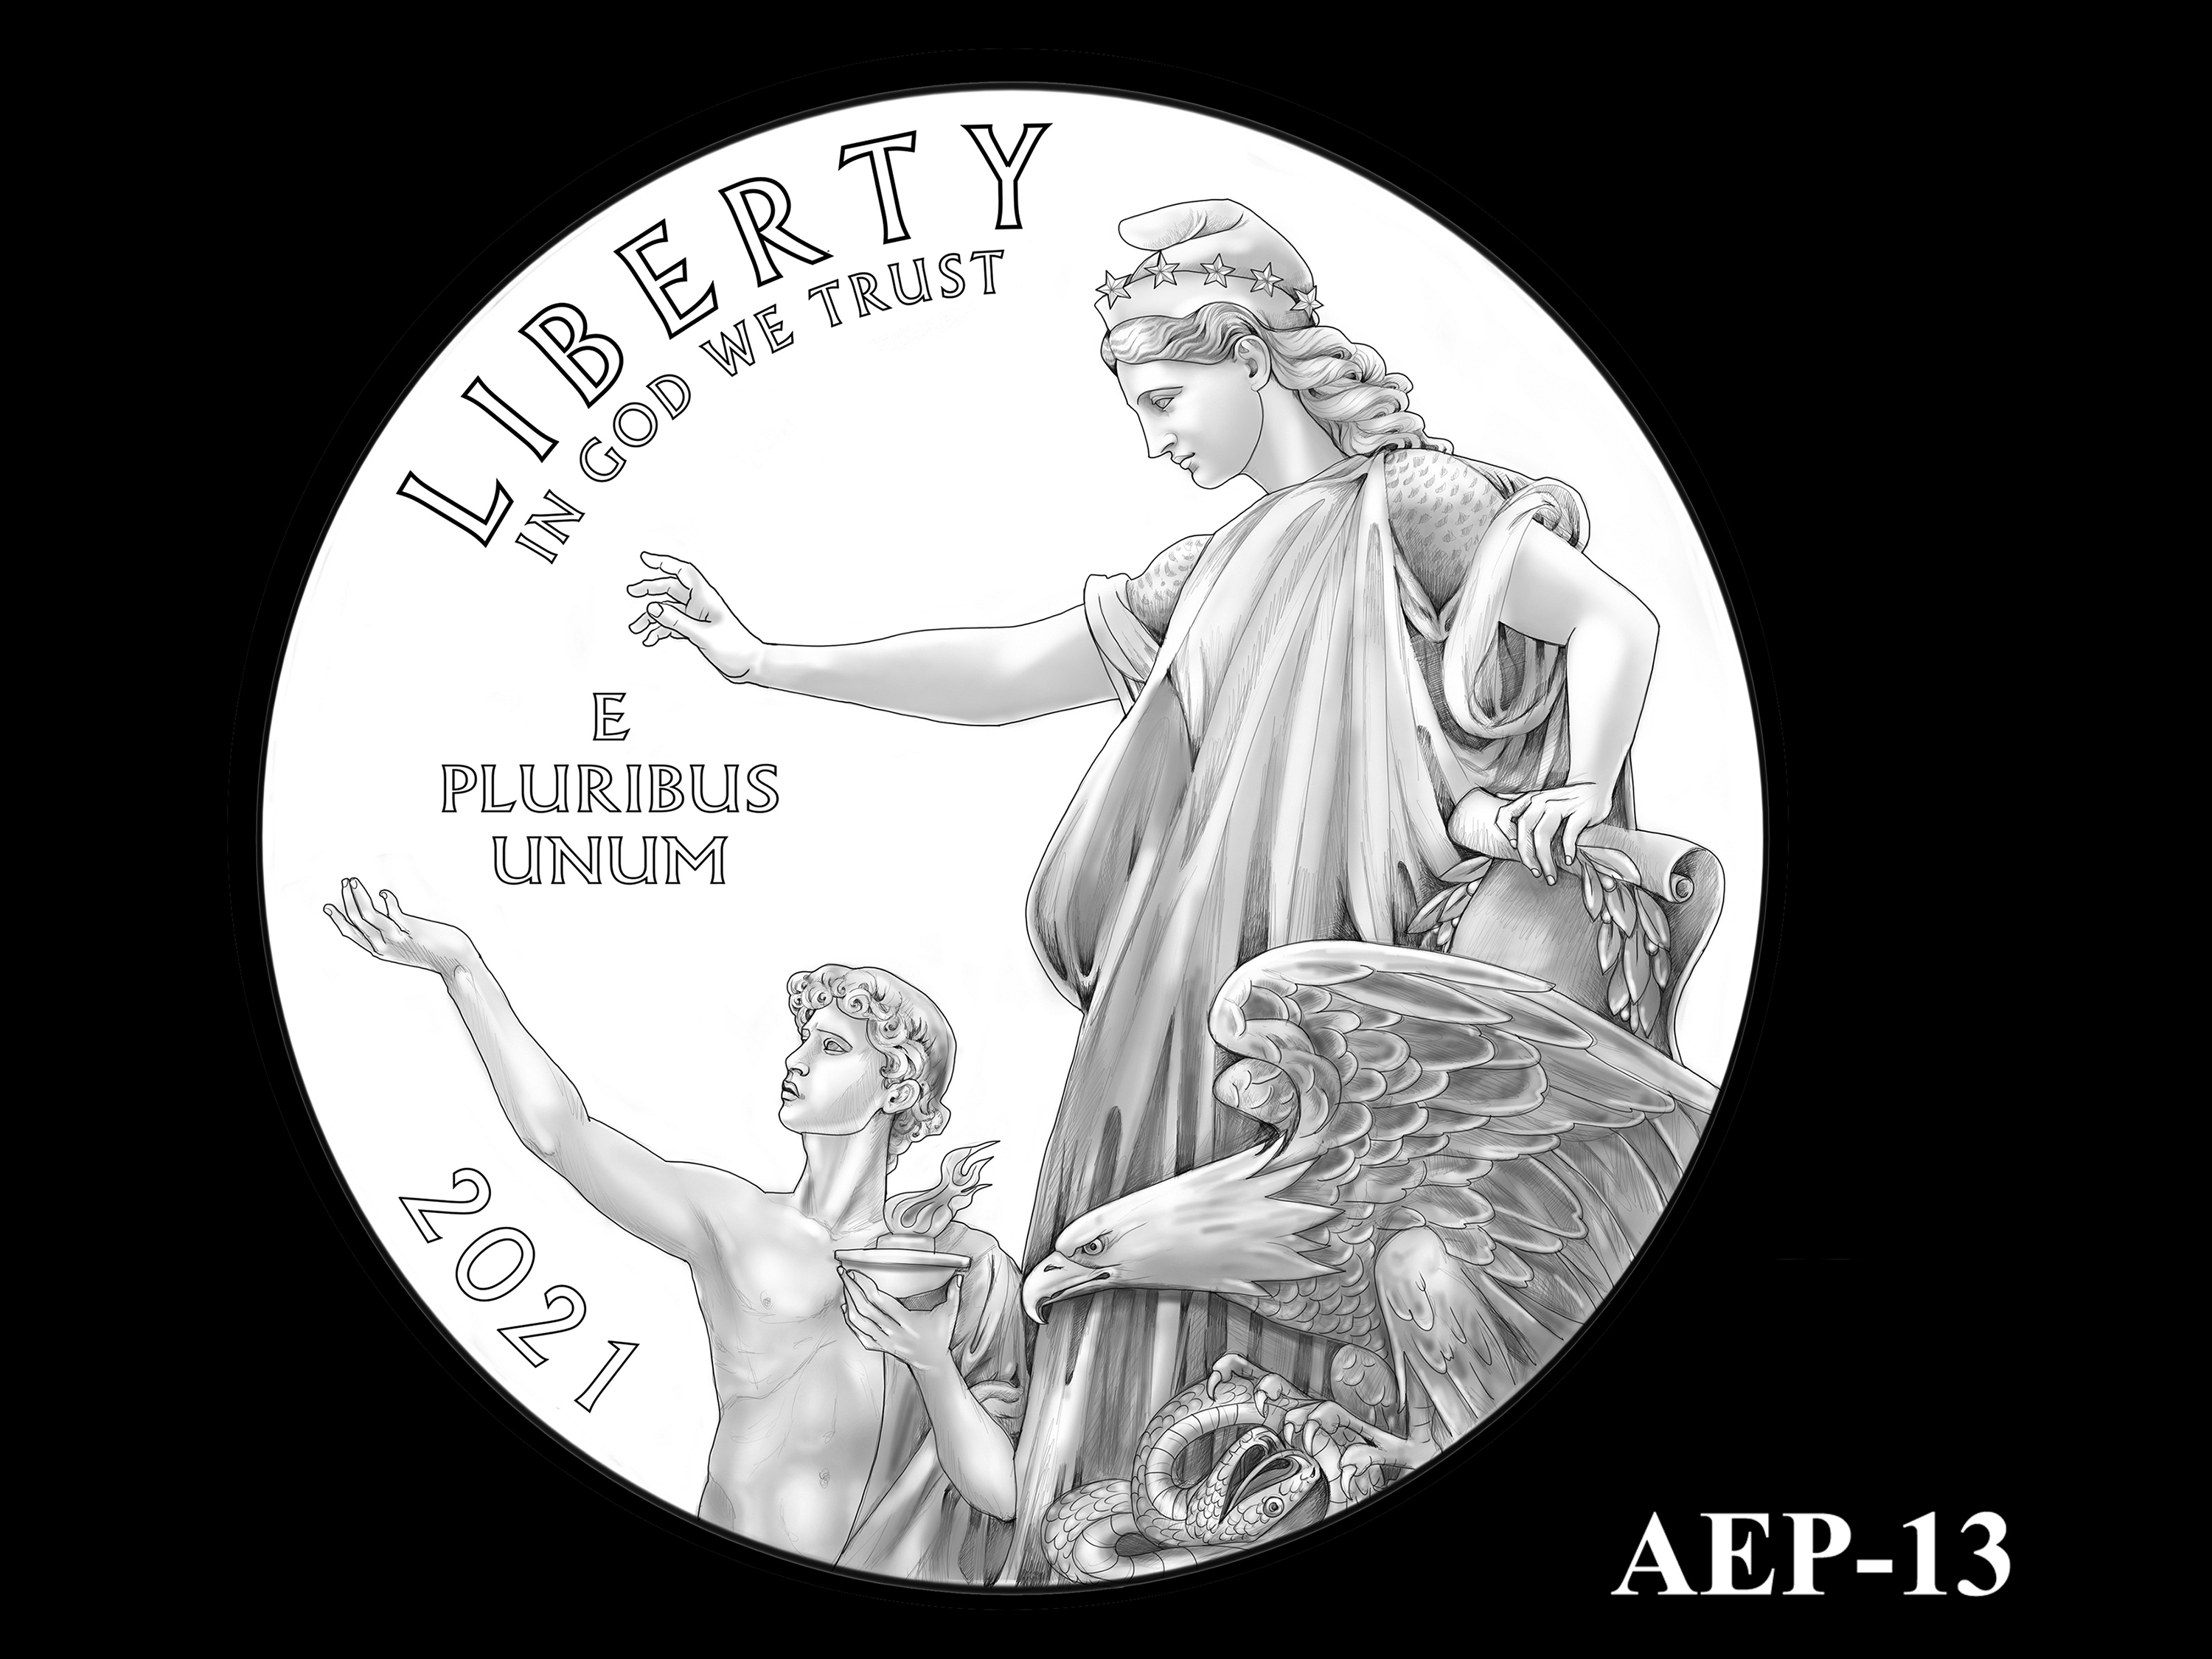 AEP-13 -- 2021 American Eagle Platinum Proof Program